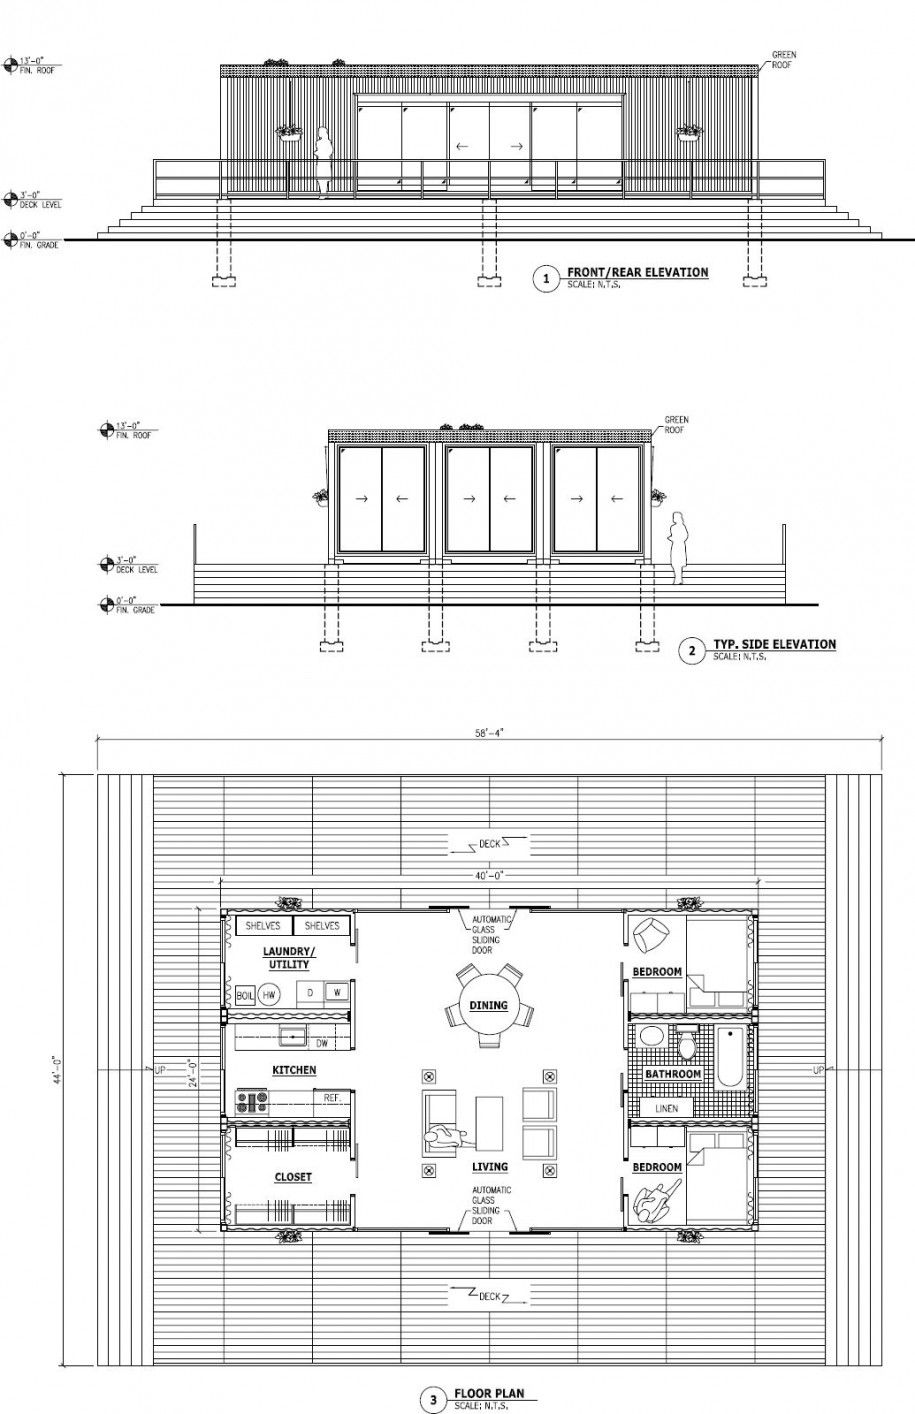 Best Shipping Container House Plans: Innovative Shipping Container House  Plans Contemporary Design ~ Ozvip.